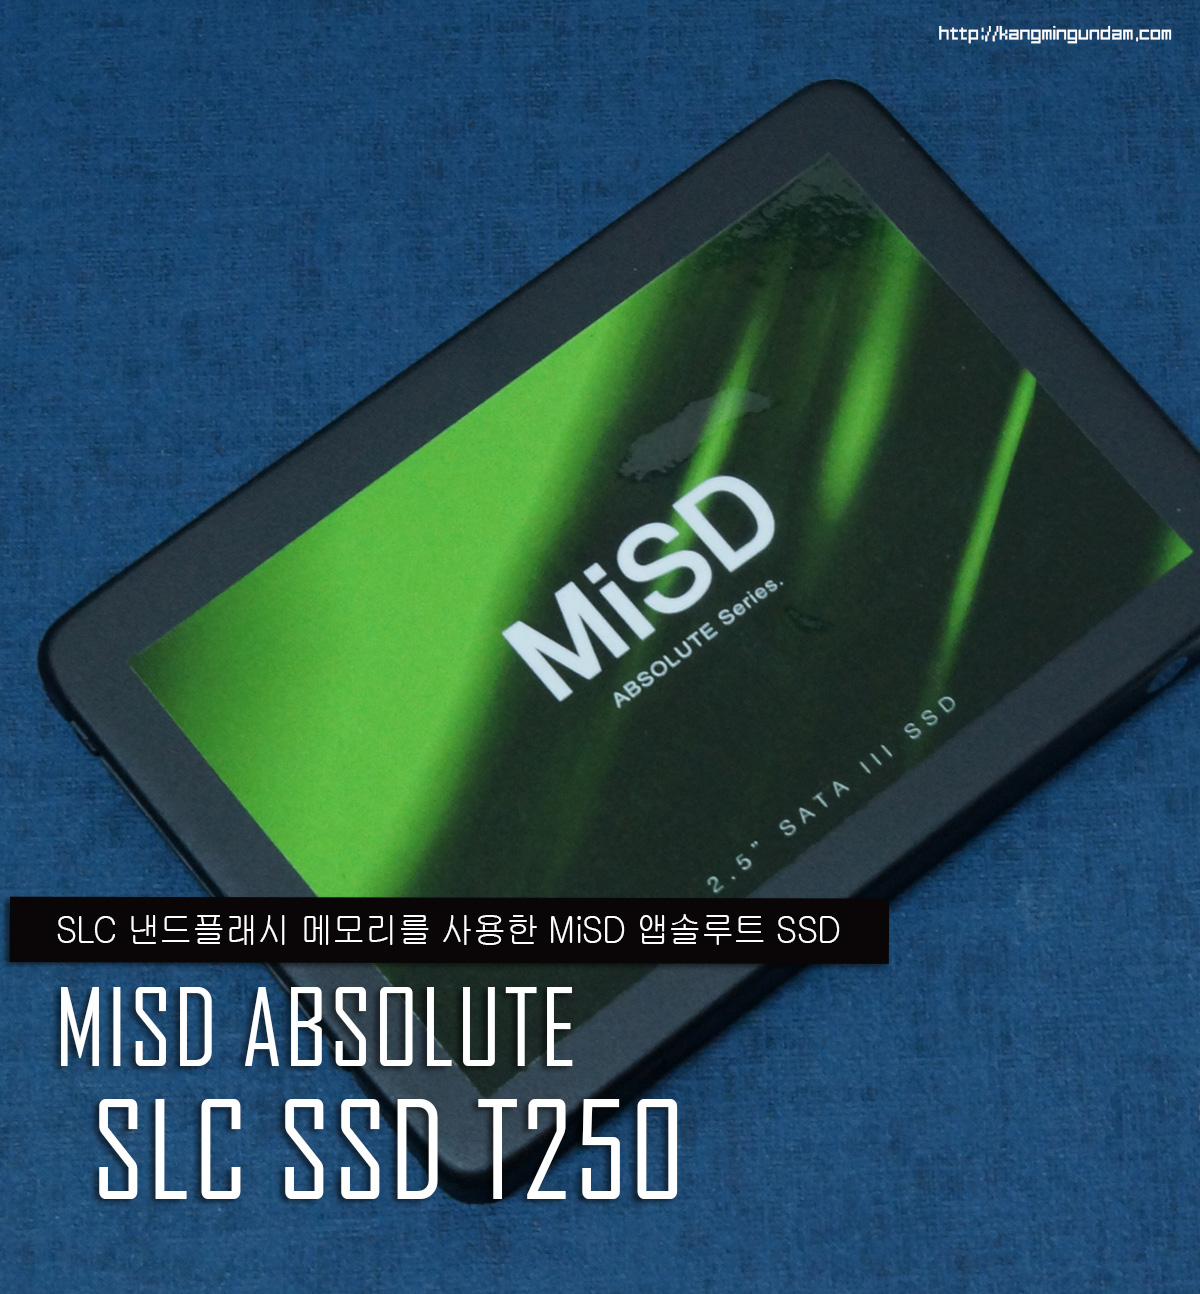 SLC SSD MiSD T250 ABSOLUTE 사용 후기 -01.jpg